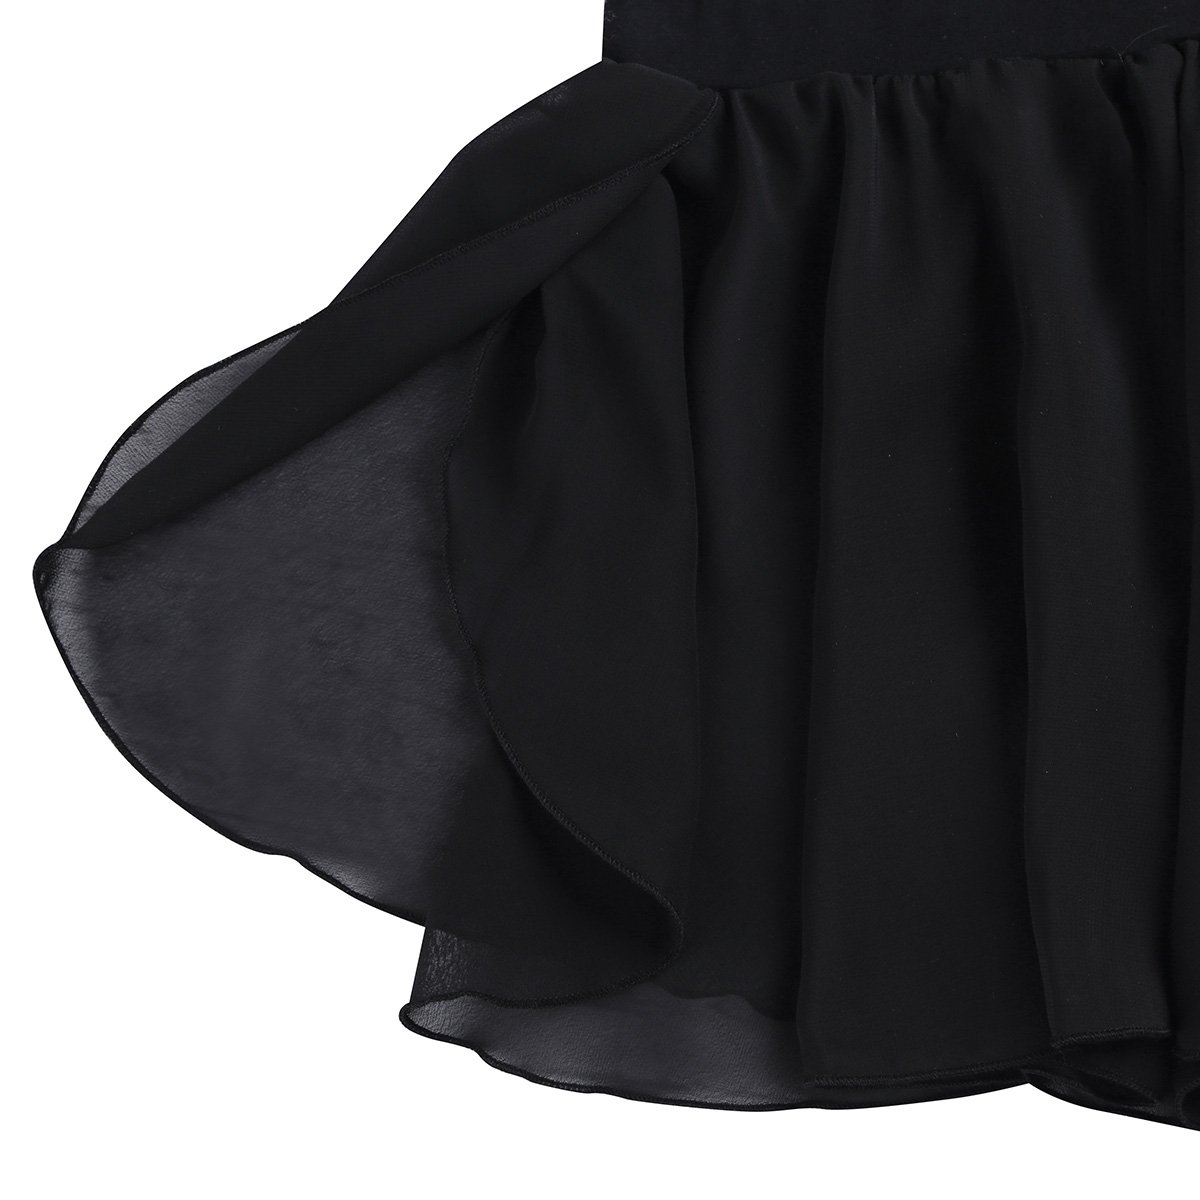 Freebily Kids Girls Dance Basic Classic Chiffon Mini Pull-On Wrap Skirt Black 7-8 by Freebily (Image #3)